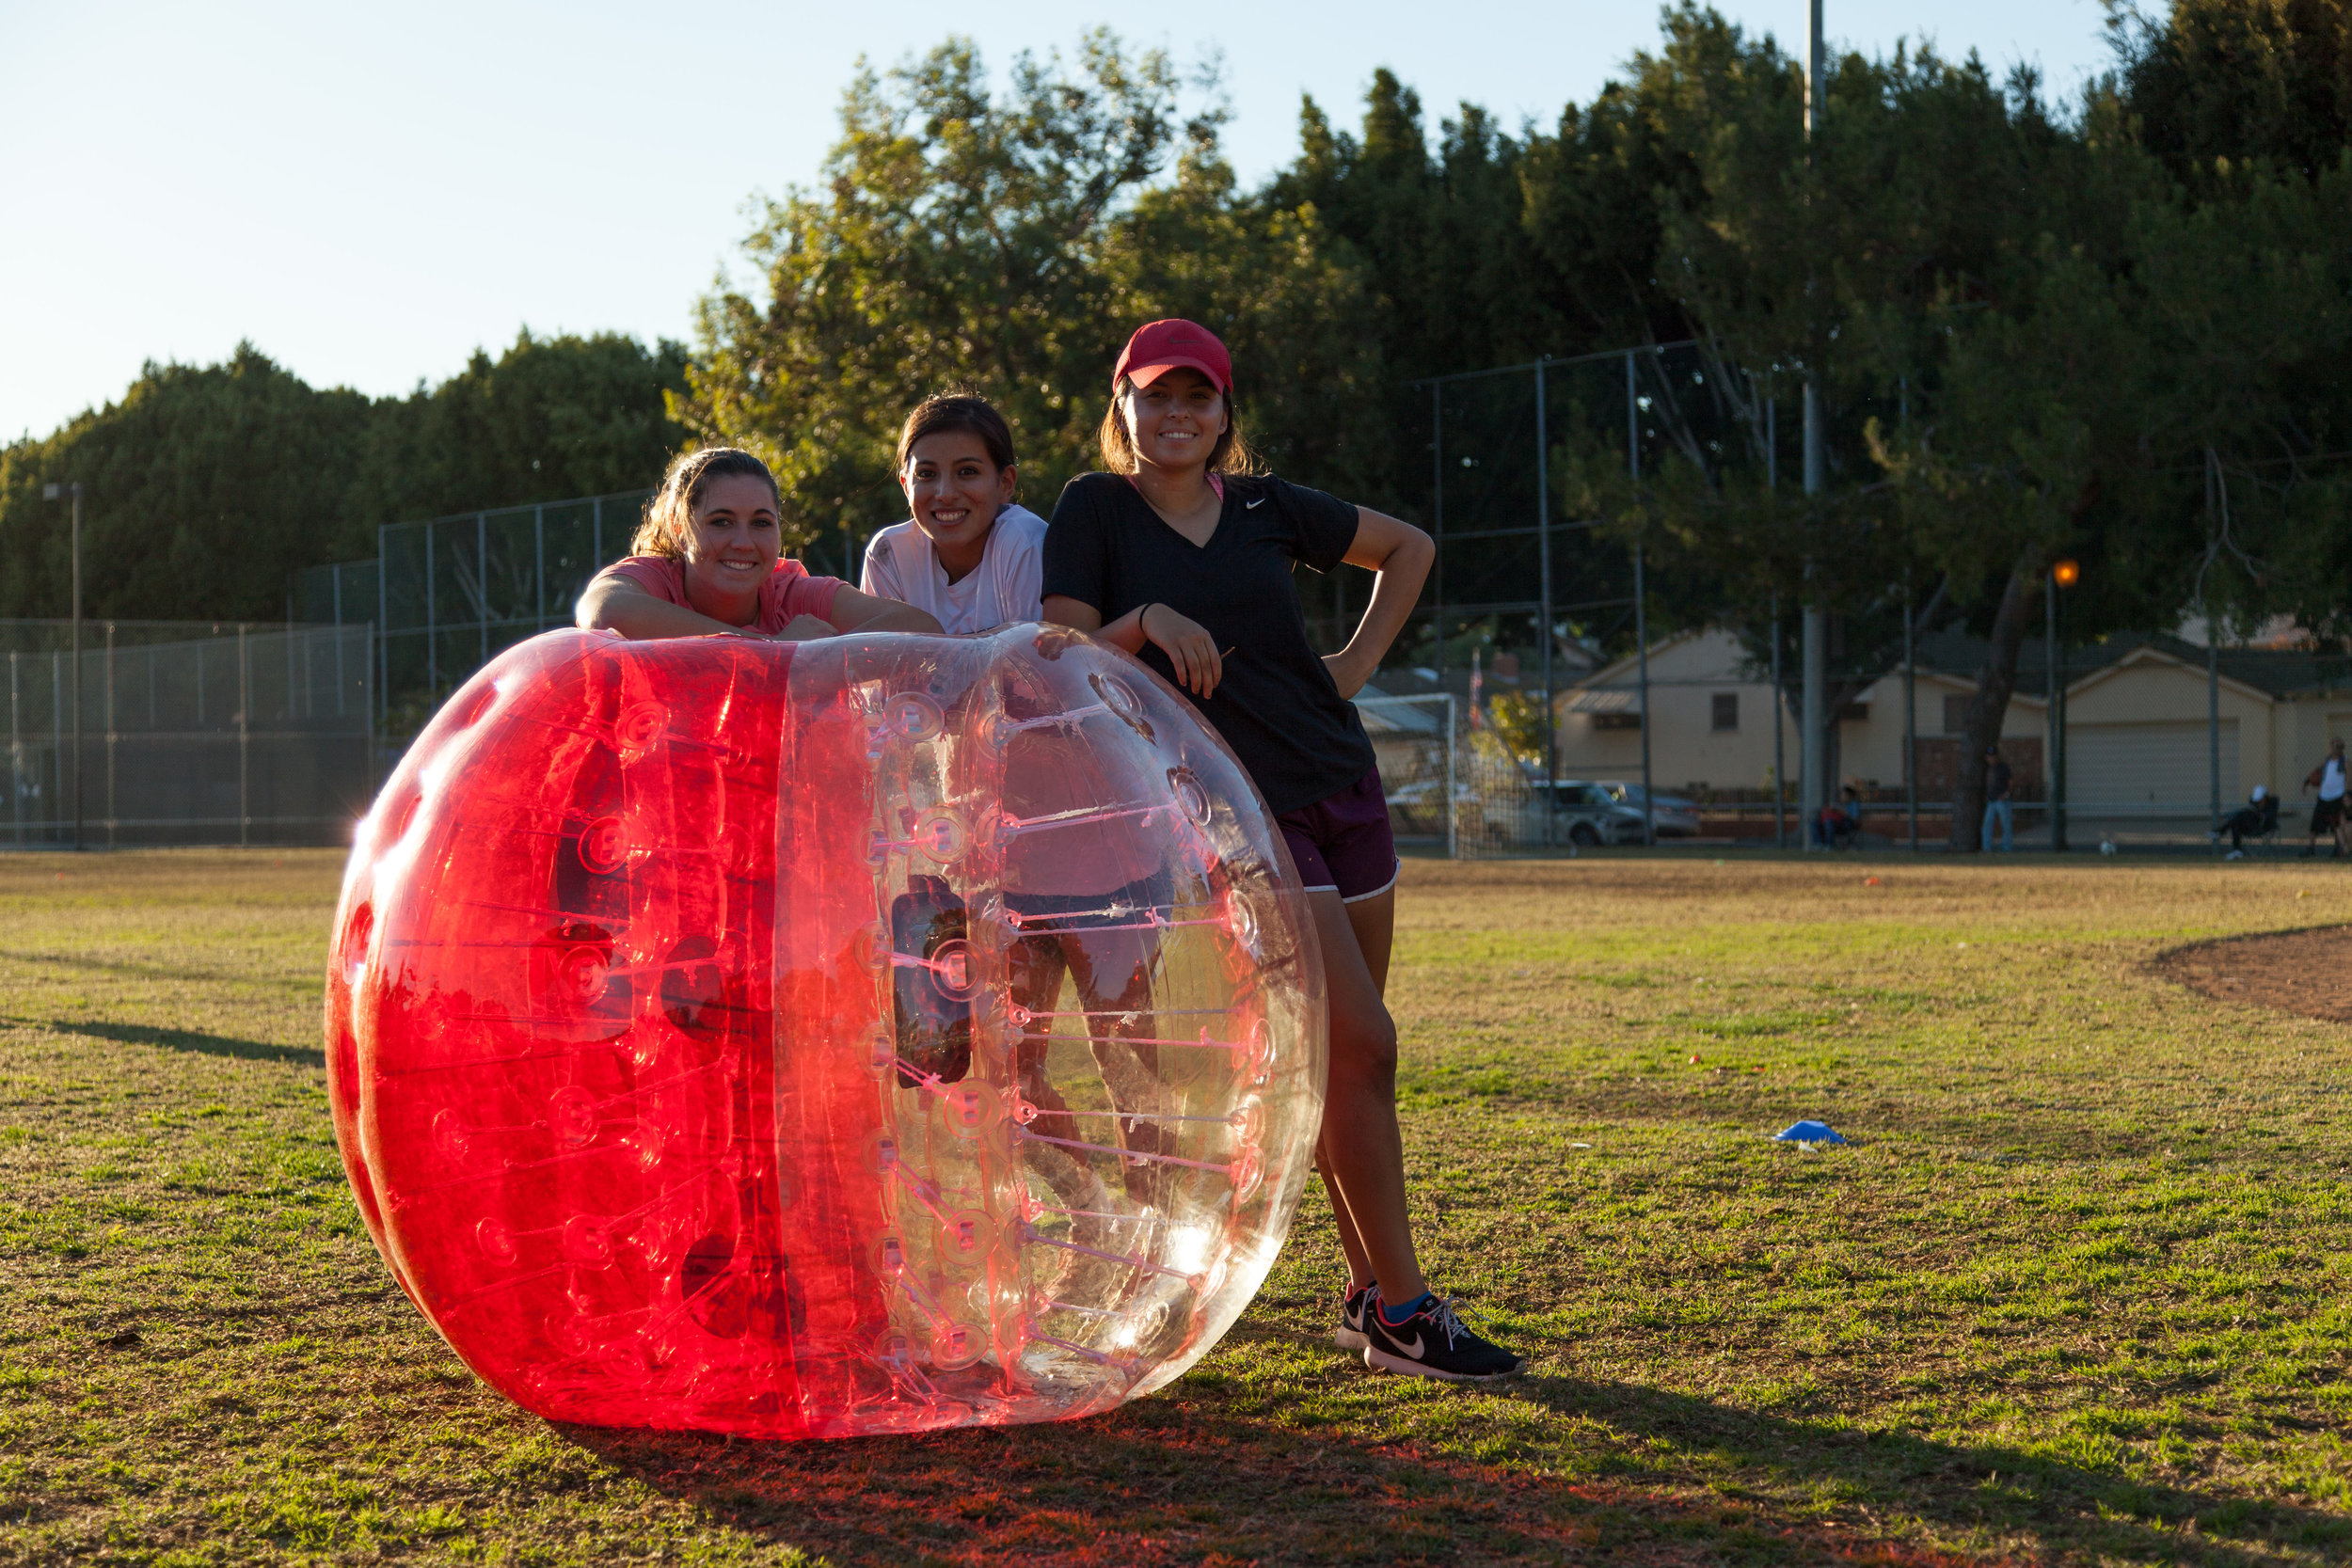 Bubble Soccer at the Park